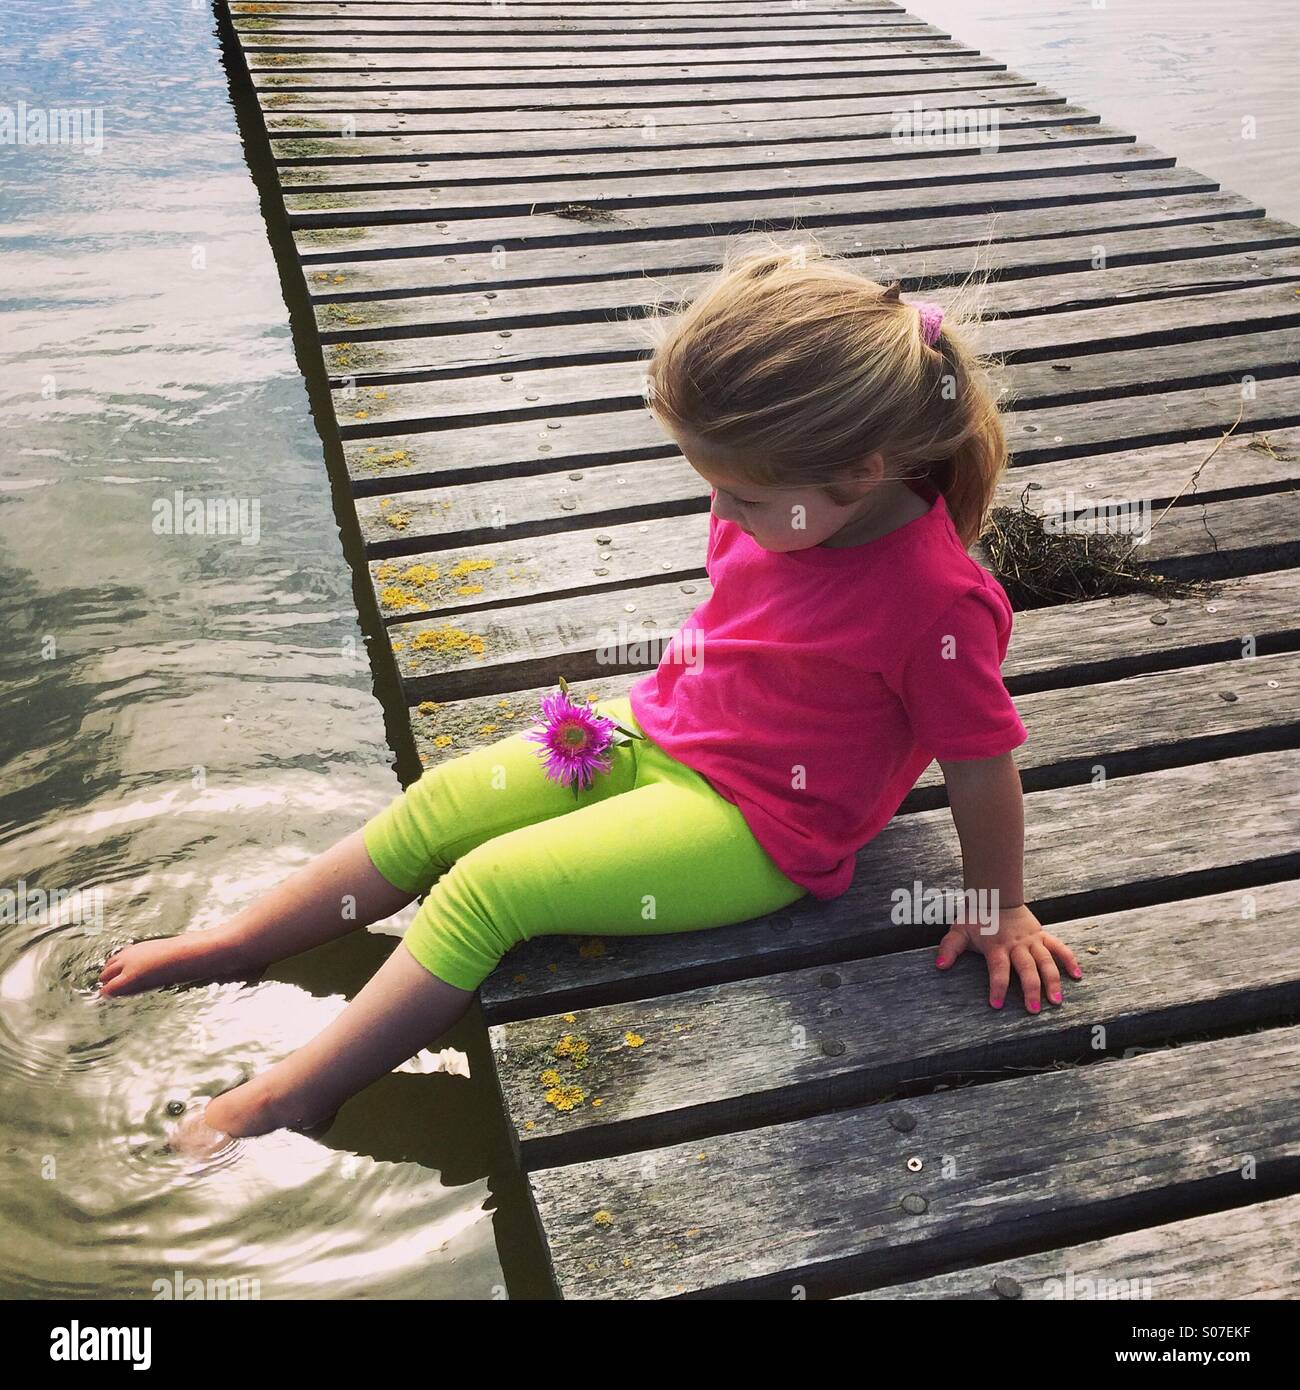 Young girl sitting at the waters edge - Stock Image